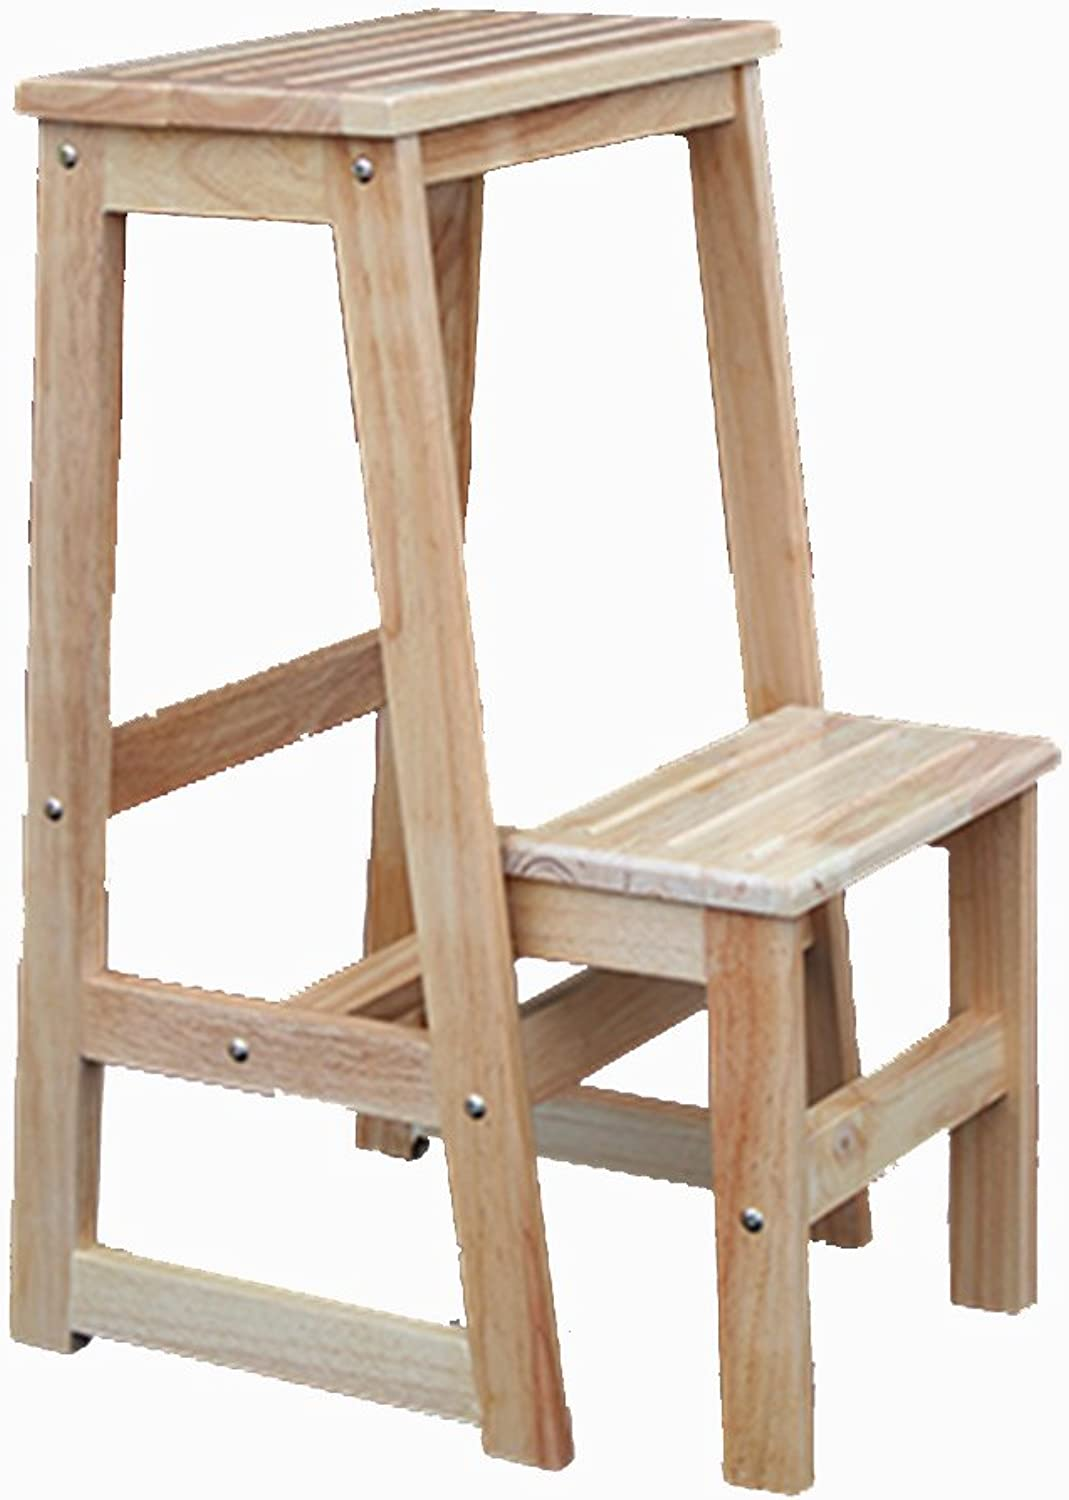 Solid Wood Step Stool, Home Thickening Single Work Solid Wood Step Stool Leisure Bar High Table Stool (color   A)